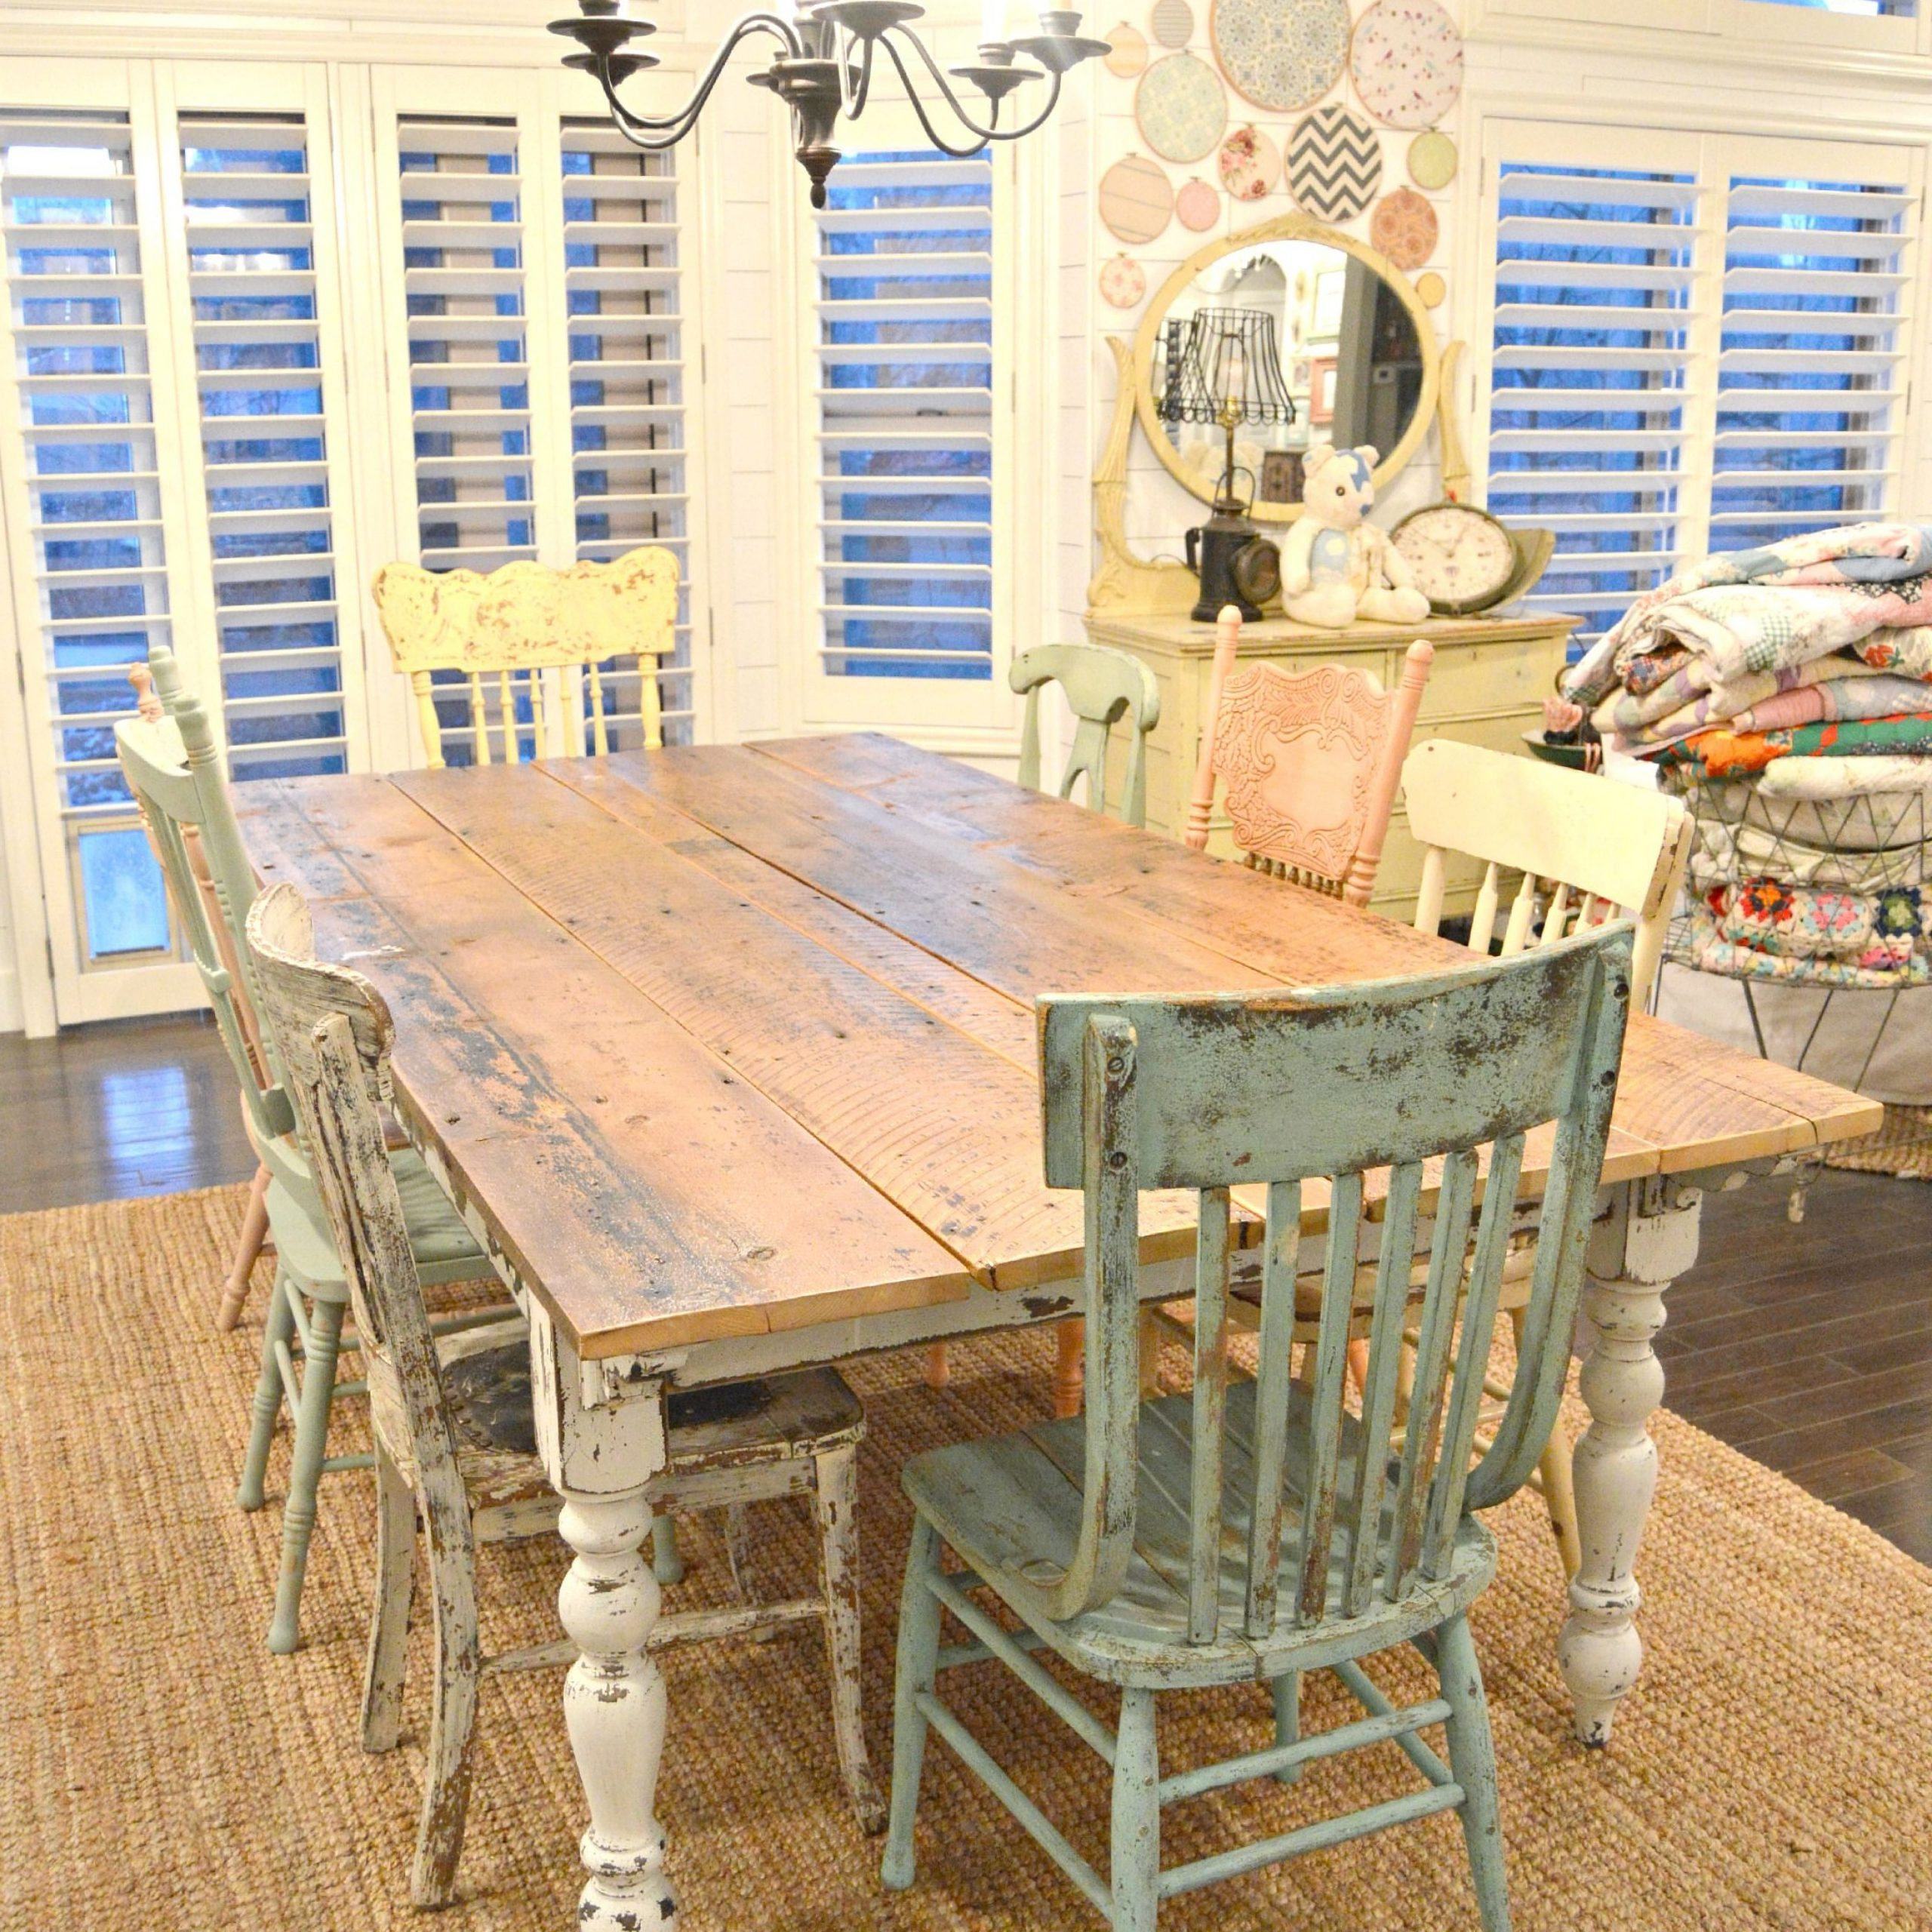 Country Dining Tables With Weathered Pine Finish Throughout Most Up To Date My New Farm Style Table W/mismatched Chairs! (View 13 of 25)